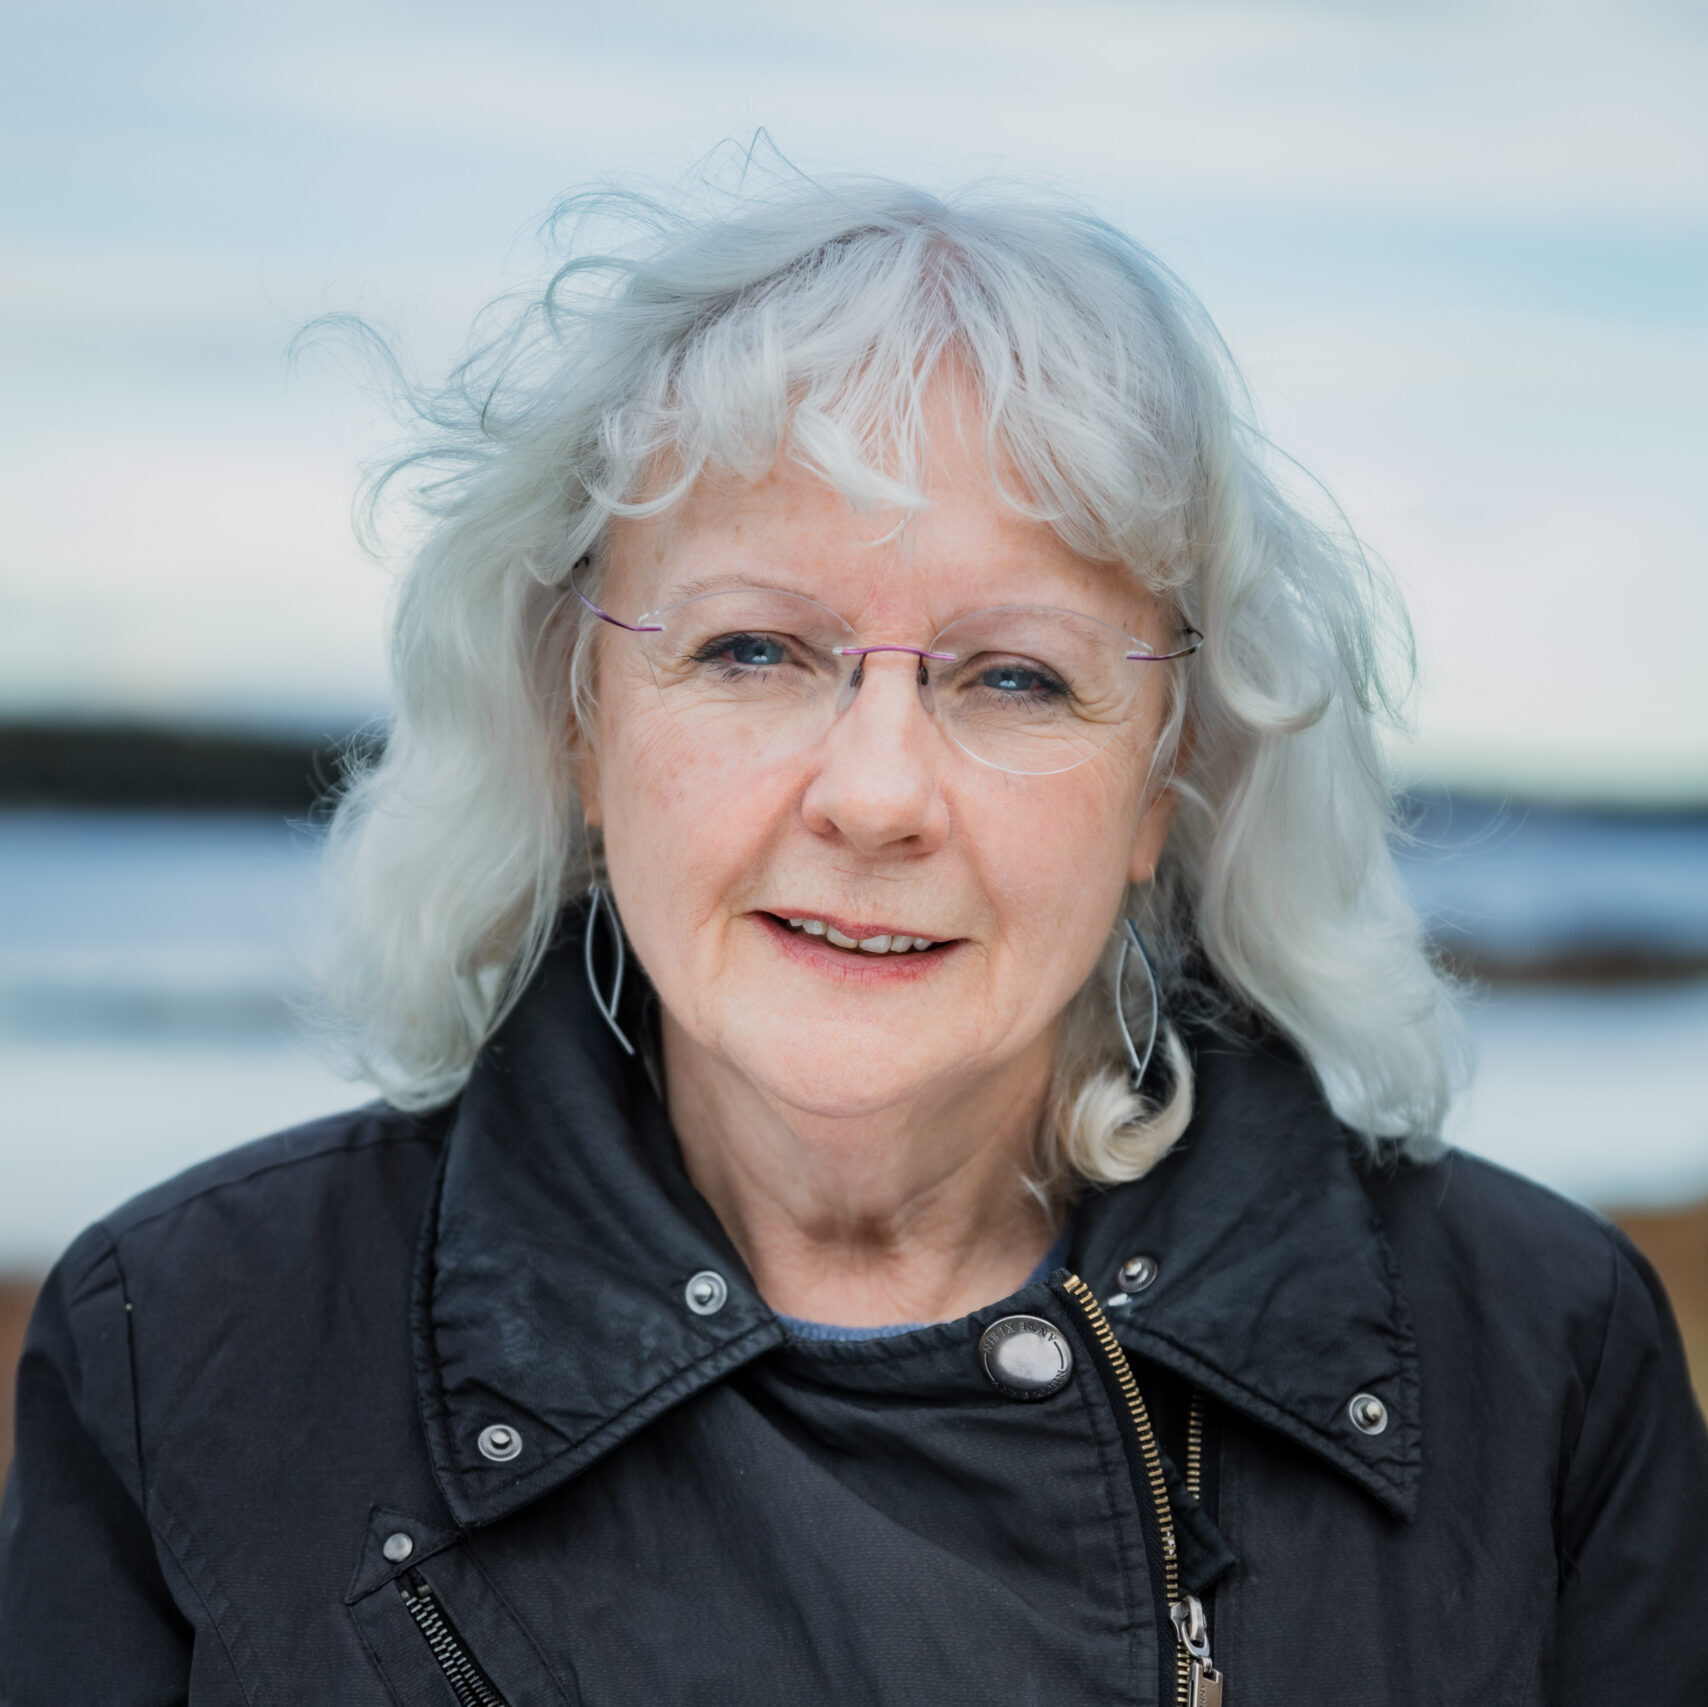 Catherine Banks, a white woman with chin length light grey hair, smiles slightly centre frame. Behind her is the ocean at early dusk.